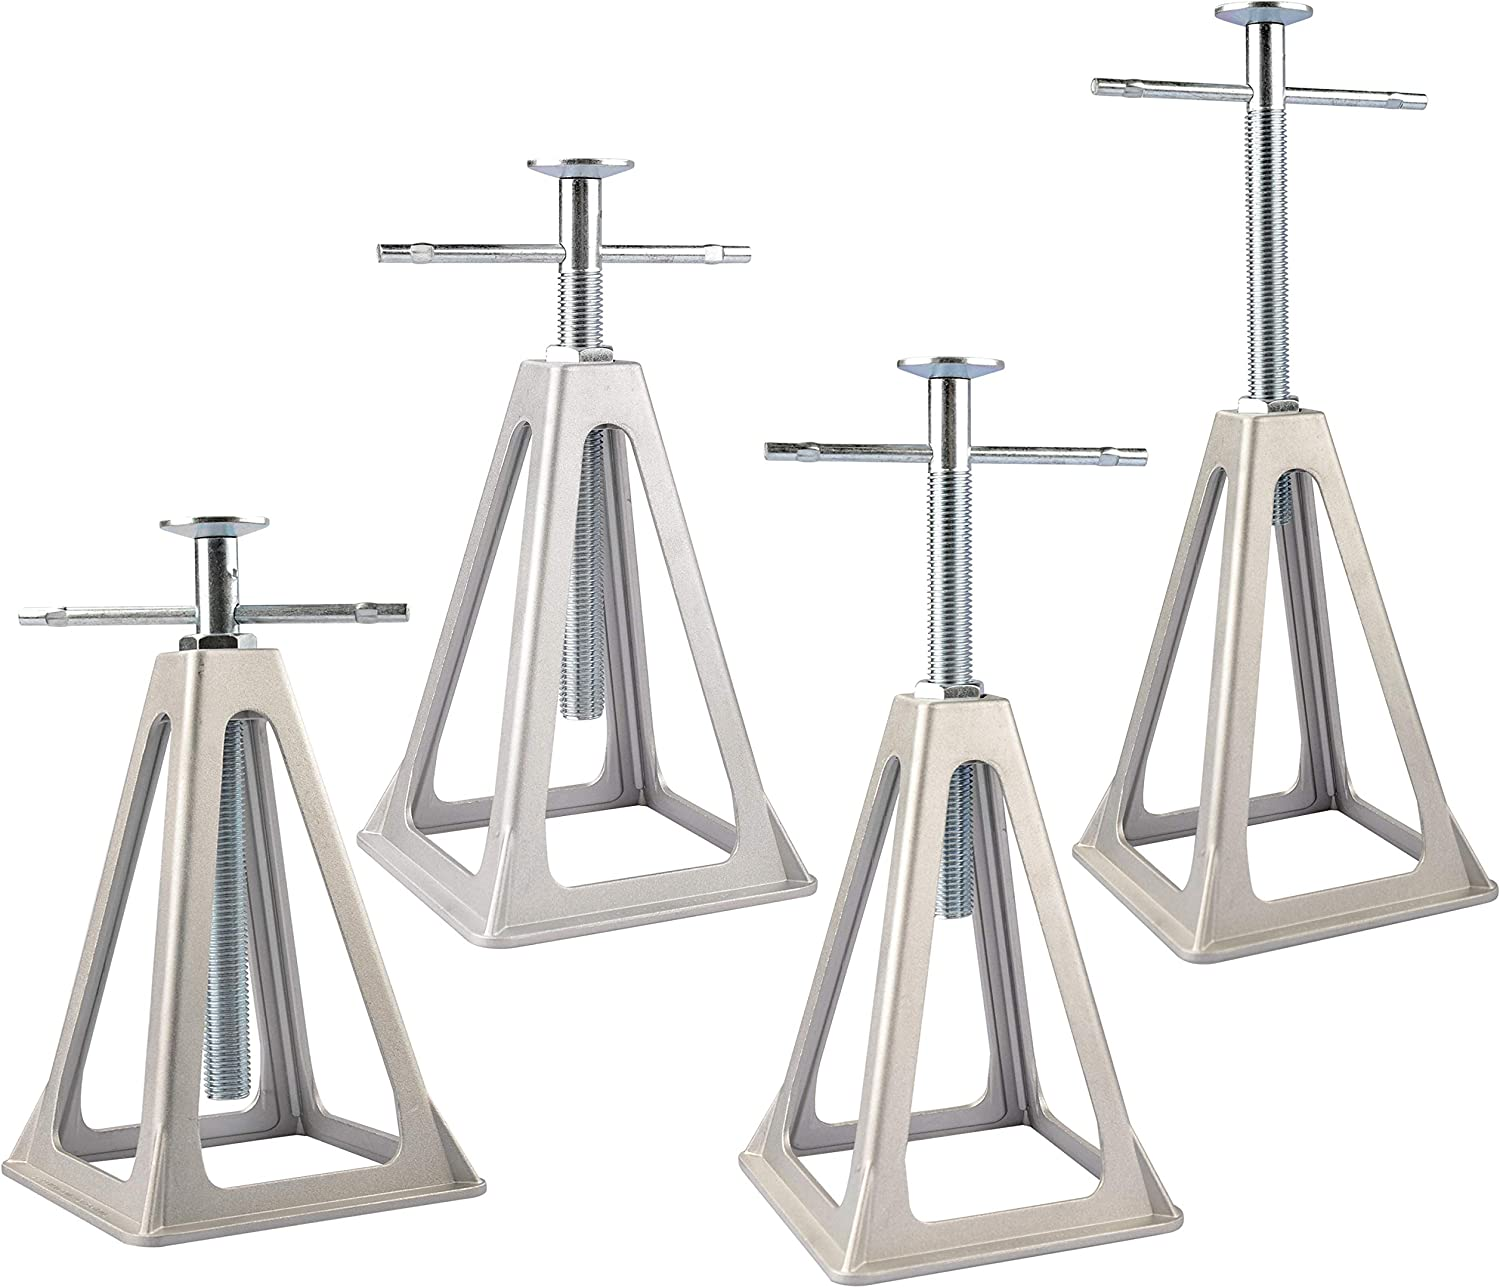 RVGUARD RV/Trailer Stabilizing Jacks 4 Packs, Adjustable from 11.5 inches to 17.5 inches